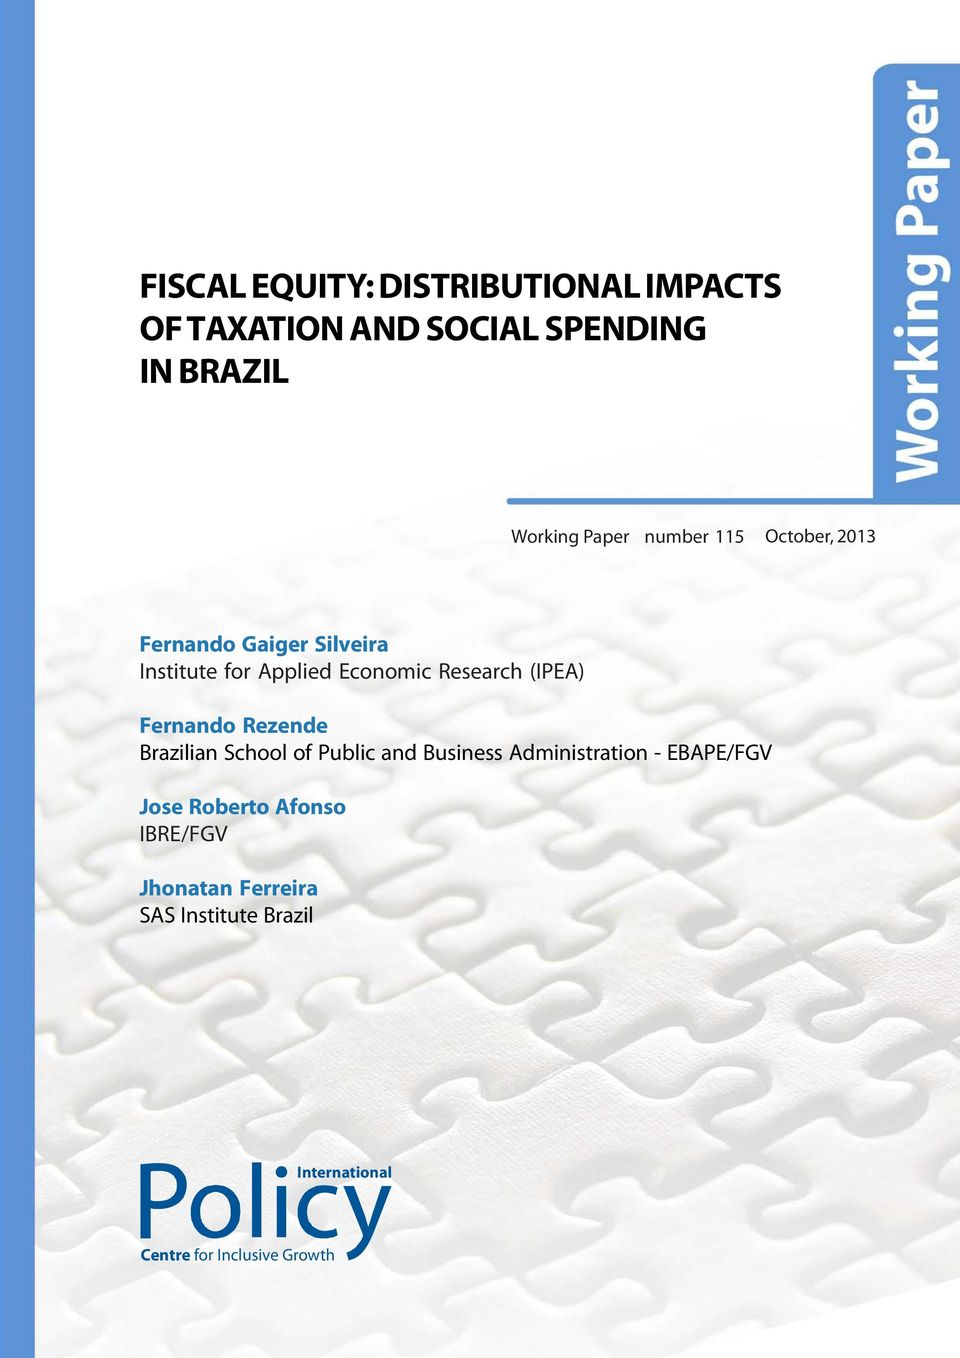 (IPEA) Fernando Rezende Brazilian School of Public and Business Administration - EBAPE/FGV Jose